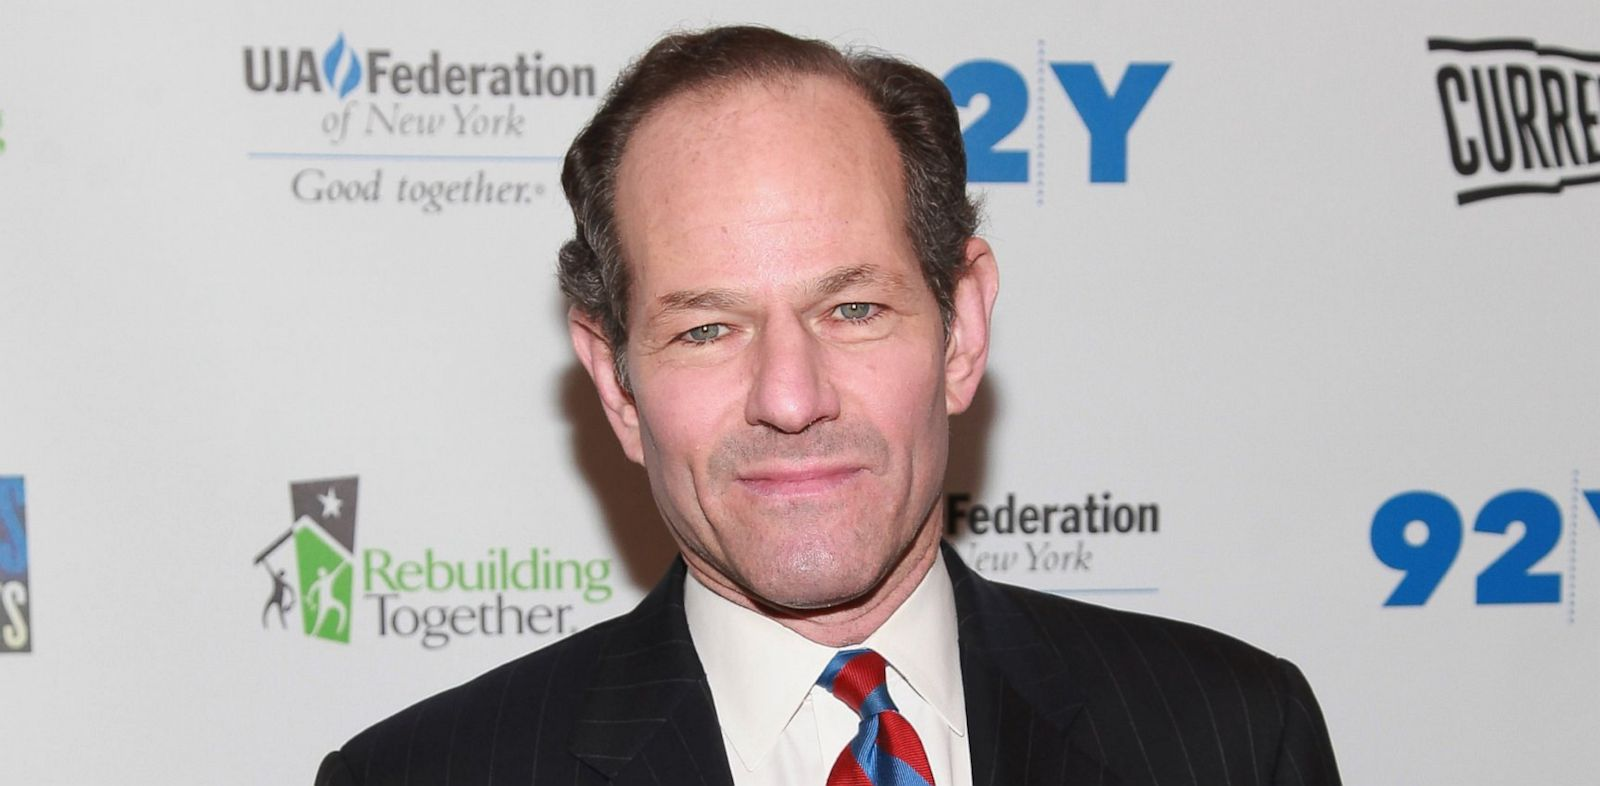 PHOTO: Eliot Spitzer is seen at 92nd Street Y on Dec. 10, 2012 in New York City.